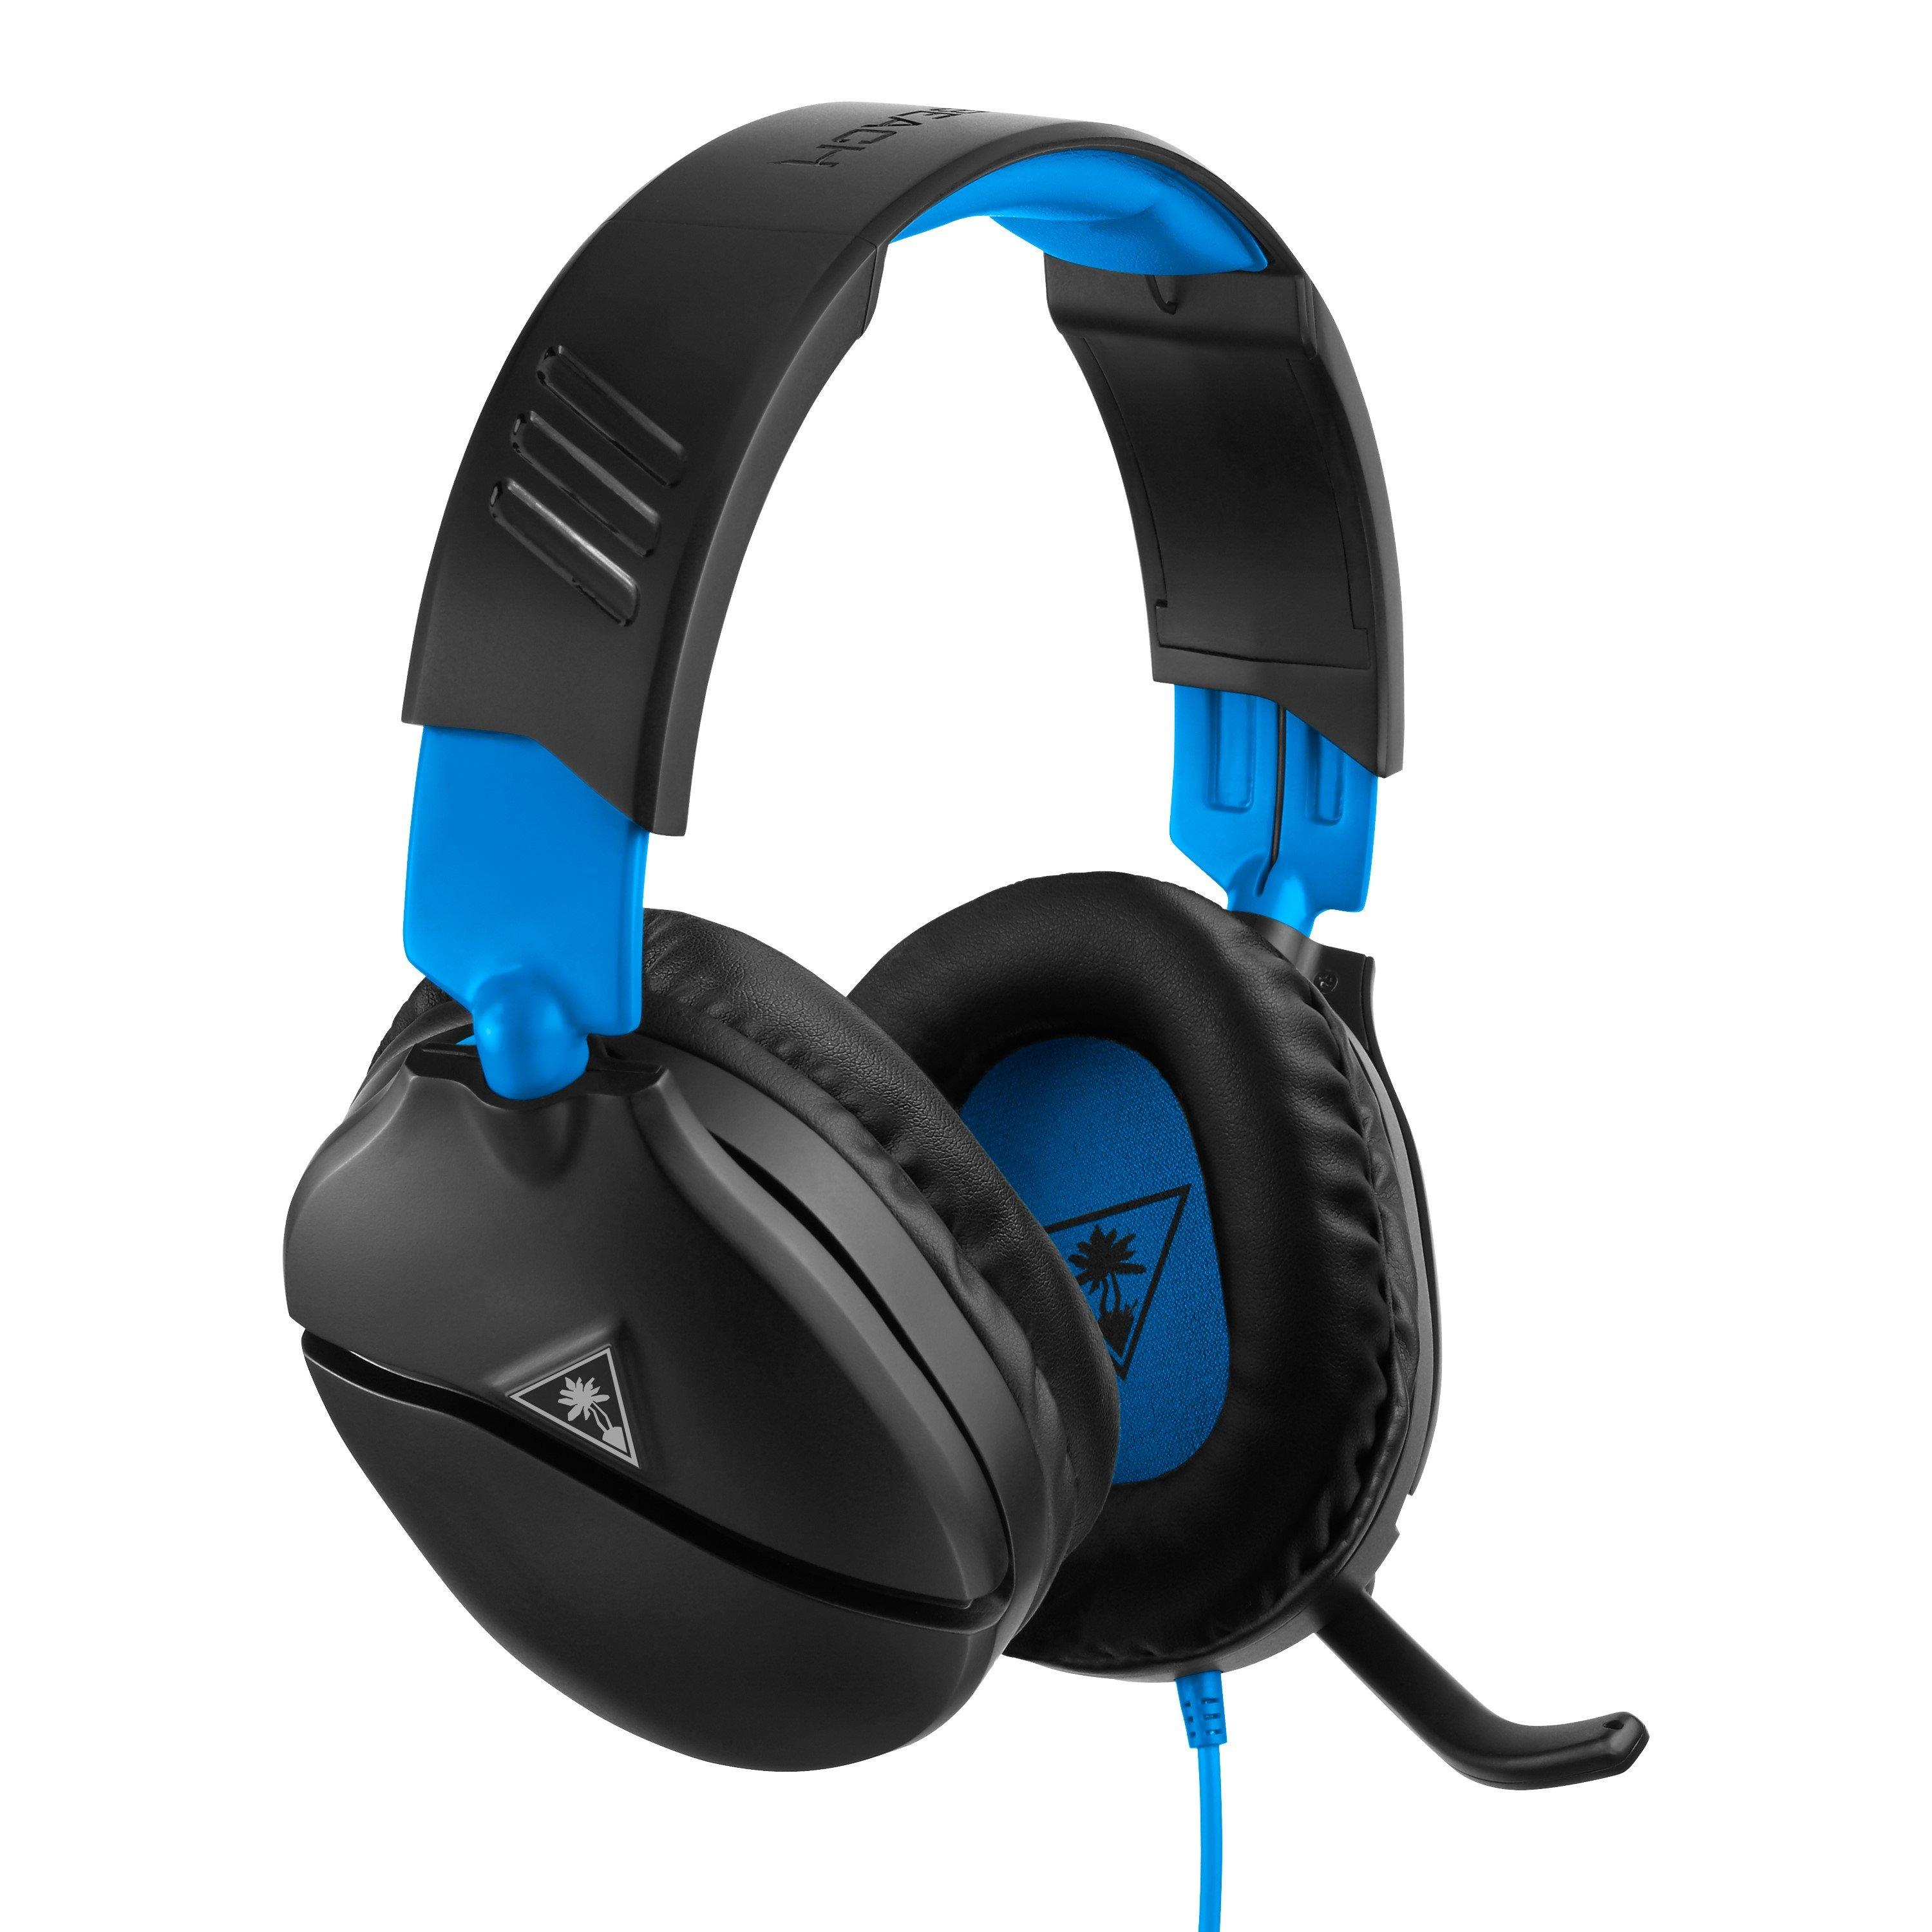 Turtle Beach Recon 70 Gaming Headset for PS4 - Black | <%Console%> |  GameStop